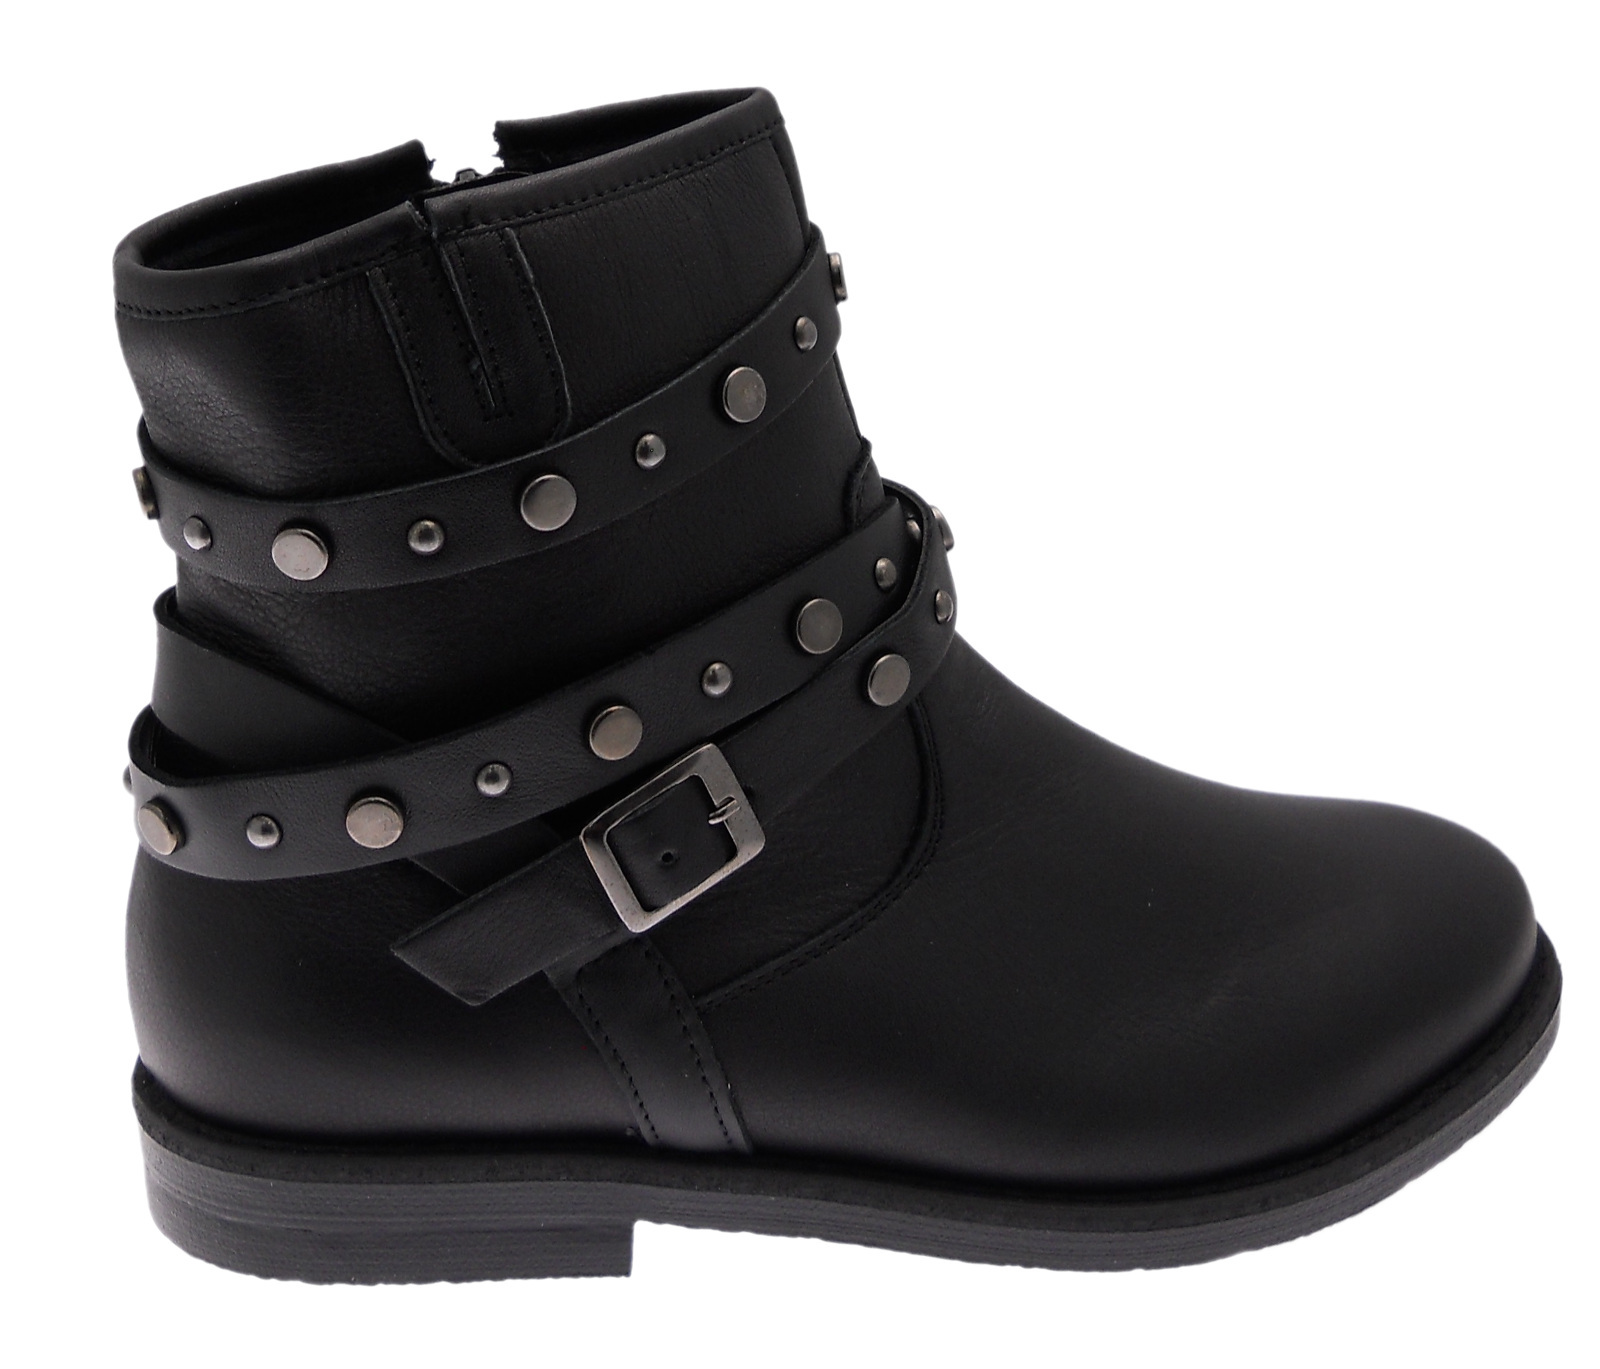 C3827 boot boot black orthopedic arches studs Loren